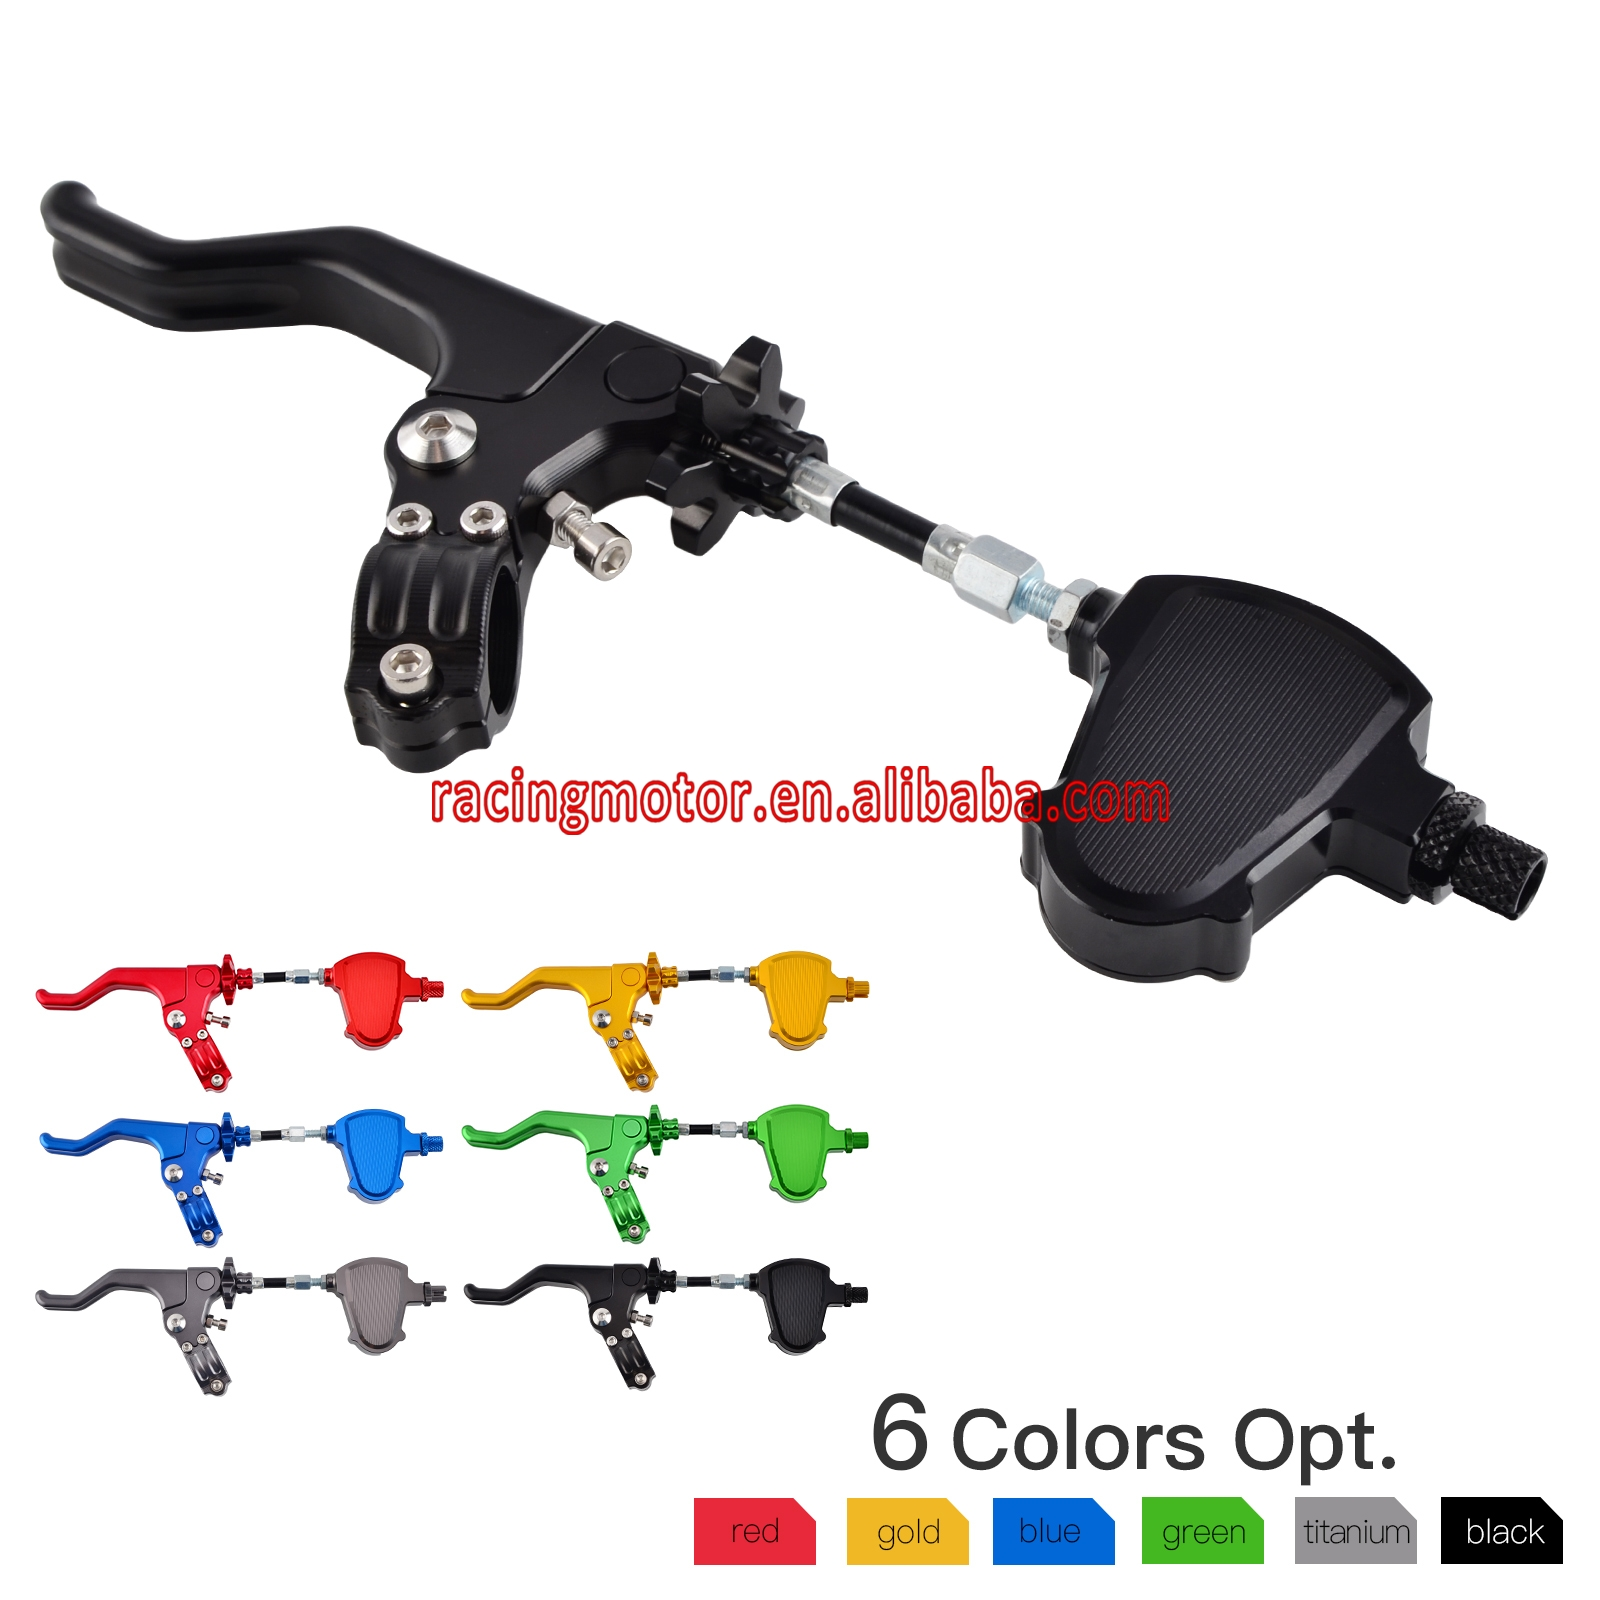 CNC Stunt Clutch Pull Cable Lever Easy System for Yamaha TTR125 TTR250 TTR600 XT250X XTZ125 DT230 Serow 225 250 YZ125X YZ250FX 7 8 22mm brake master cylinder clutch levers for yamaha wr yz ttr 250 wr250f xt250x tricker yfz450 ttr600 dt230 serow 225 250